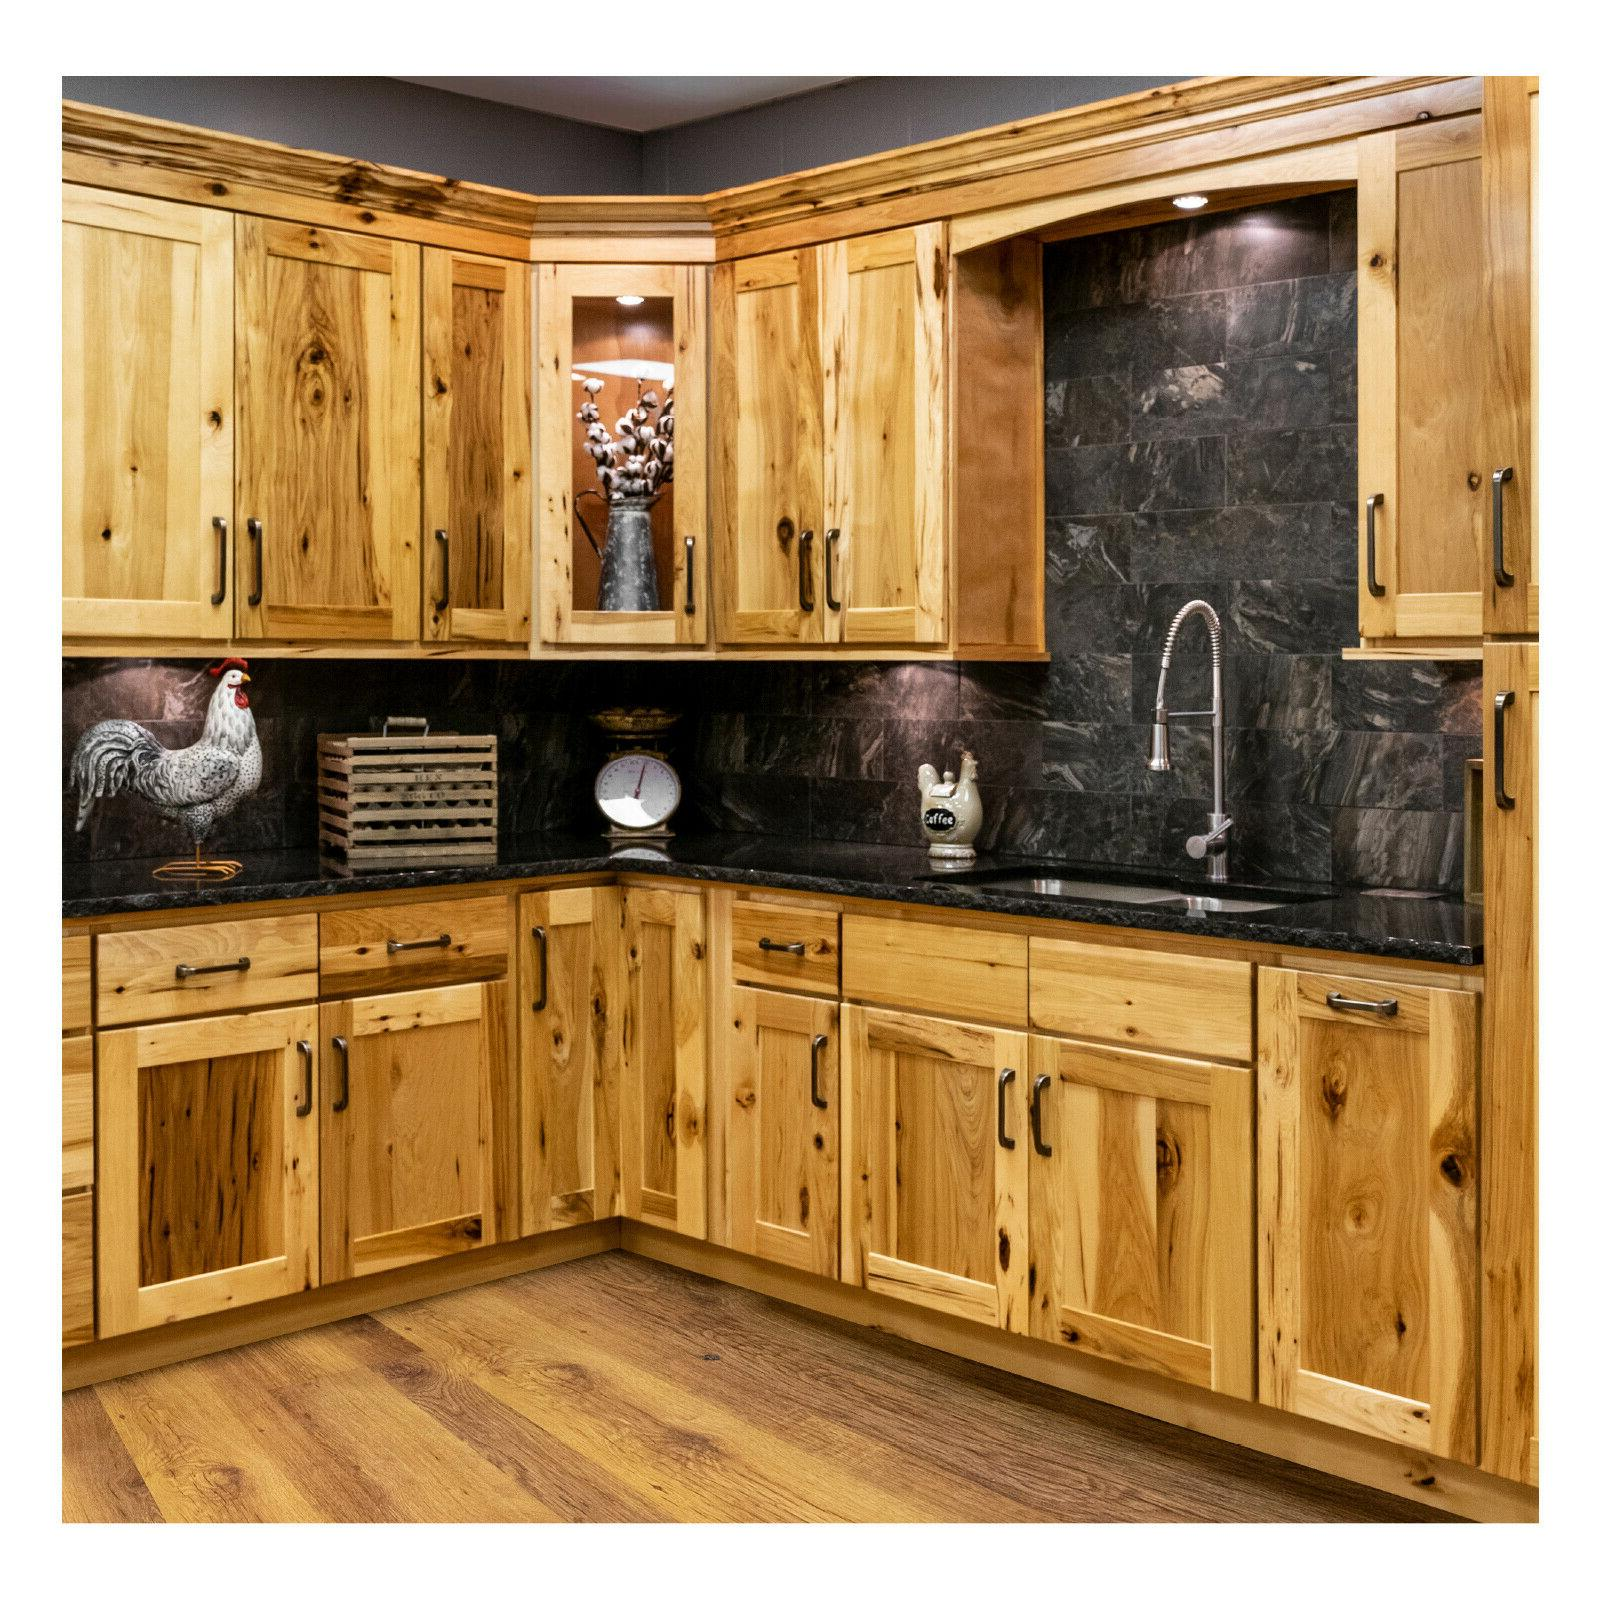 96 solid wood kitchen cabinets full overlay